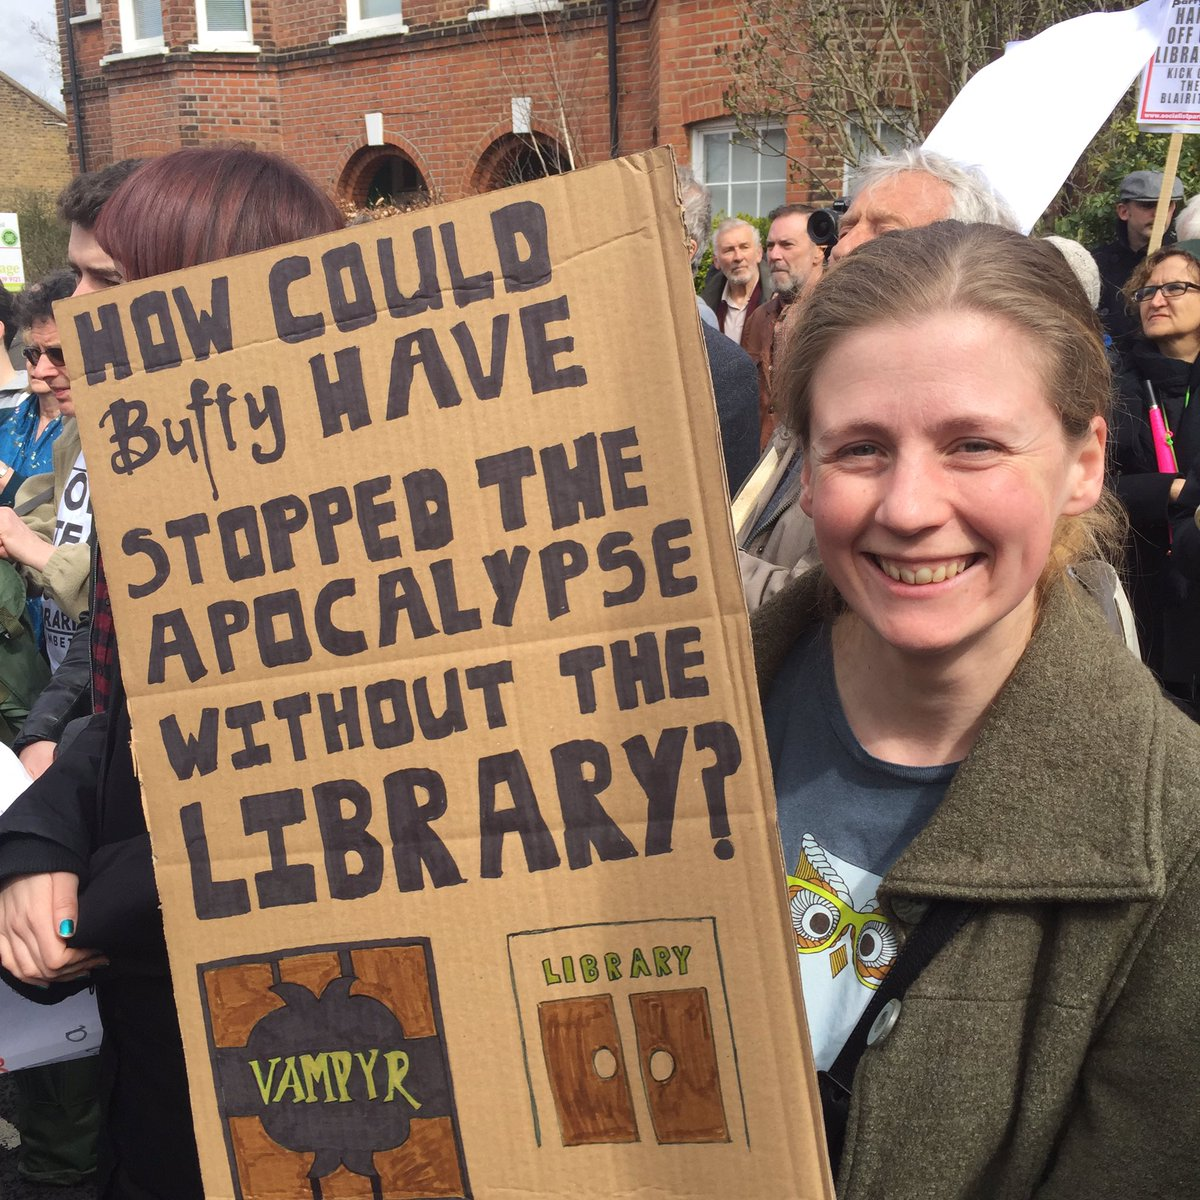 And winner of placard of the day goes to @DrSianF. Genius. #BuffyTheVampireSlayer #defendtheten #saveourlibraries https://t.co/XPxftEm1HK